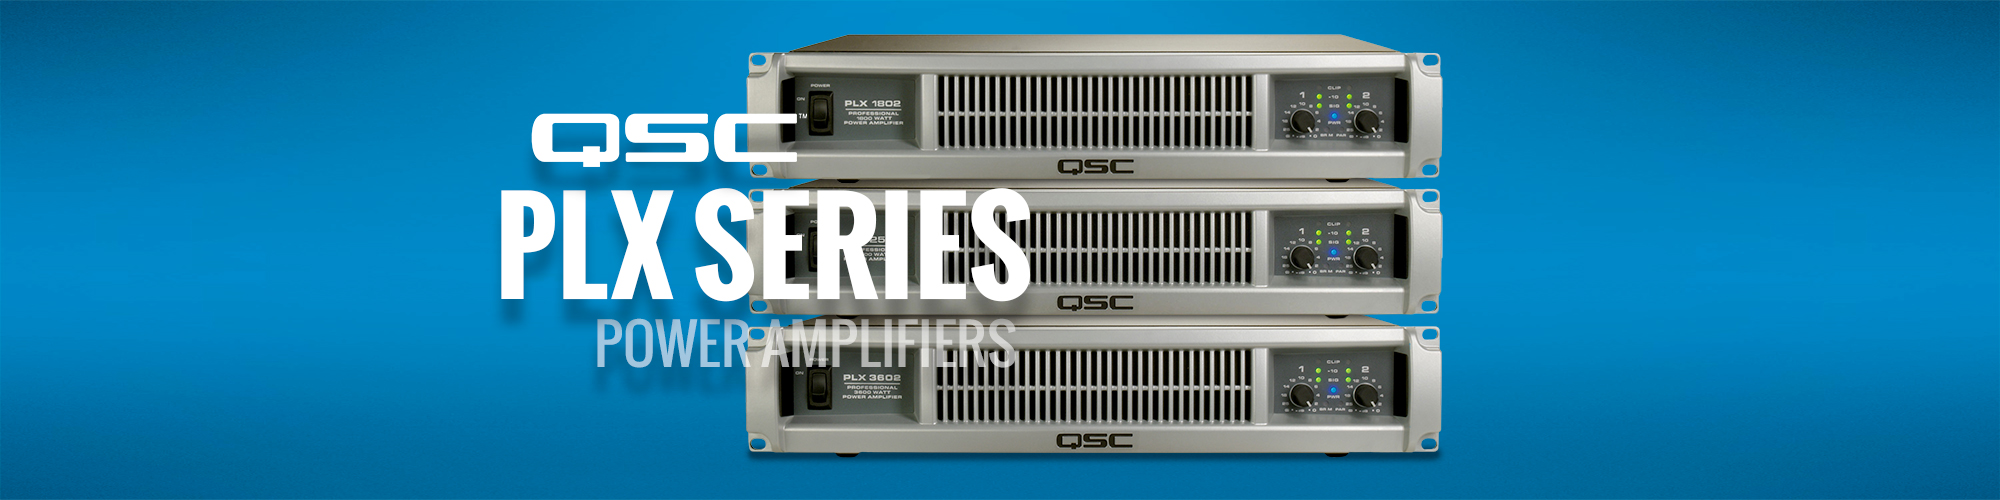 QSC PLX Series